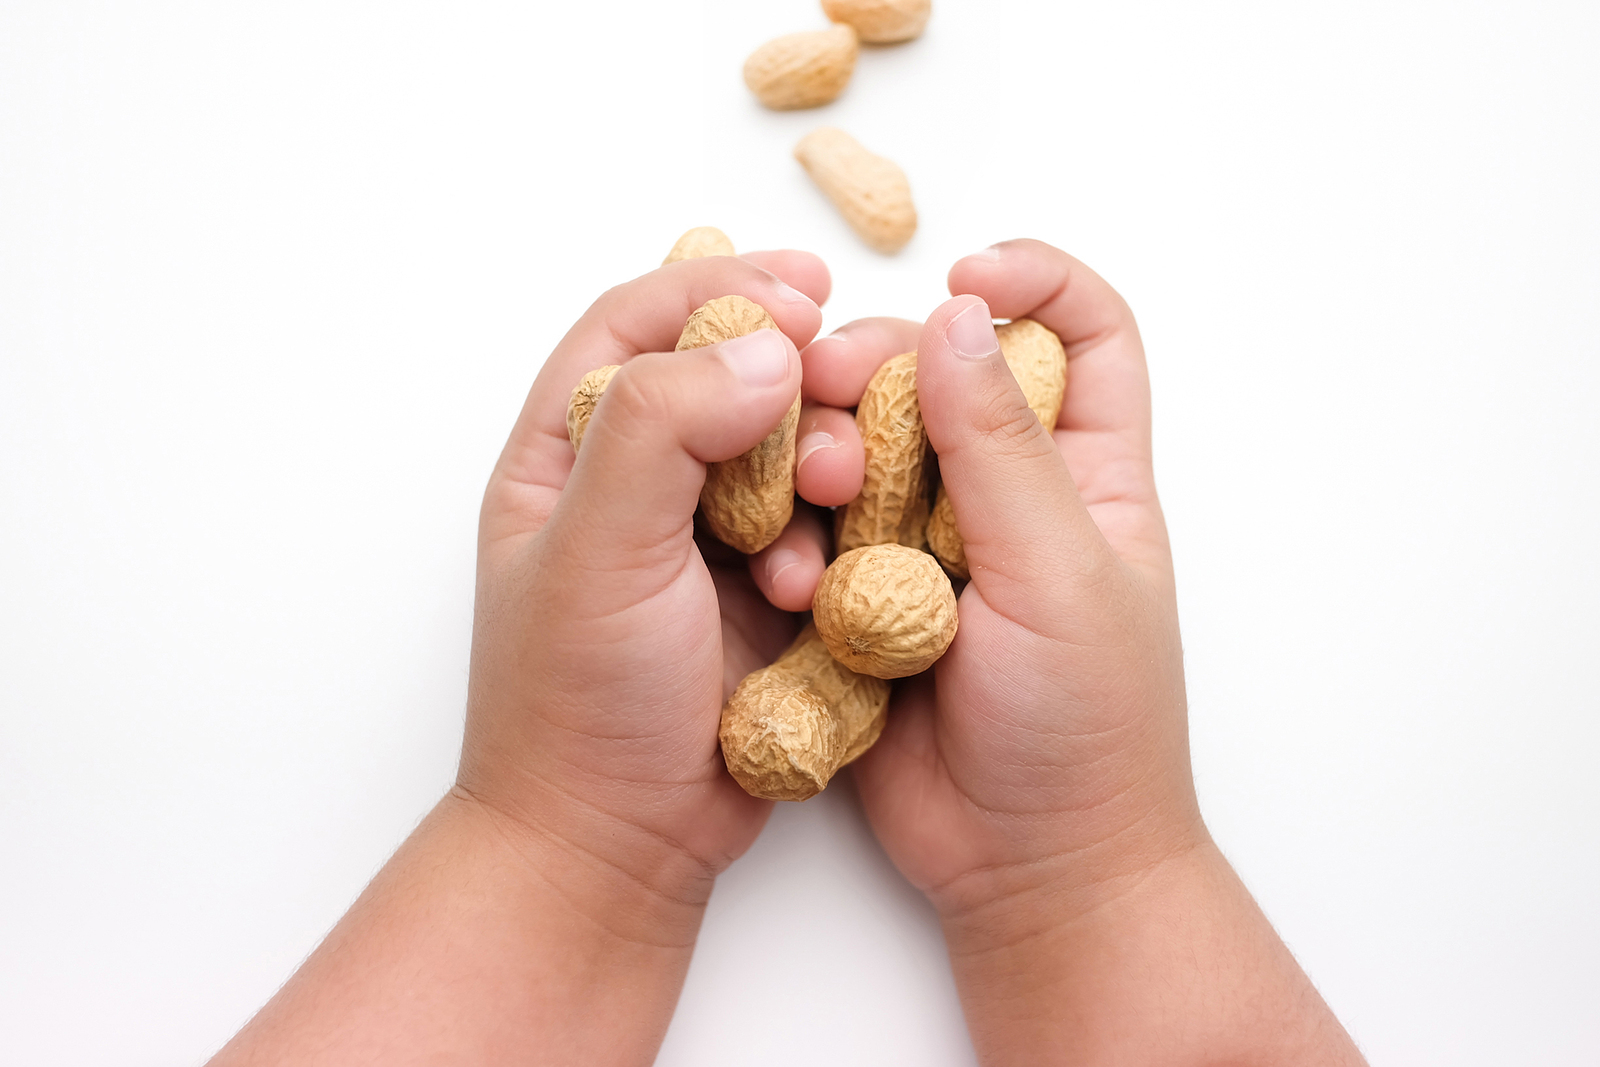 Researchers suggest there is a link between food allergies and childhood anxiety and depression.